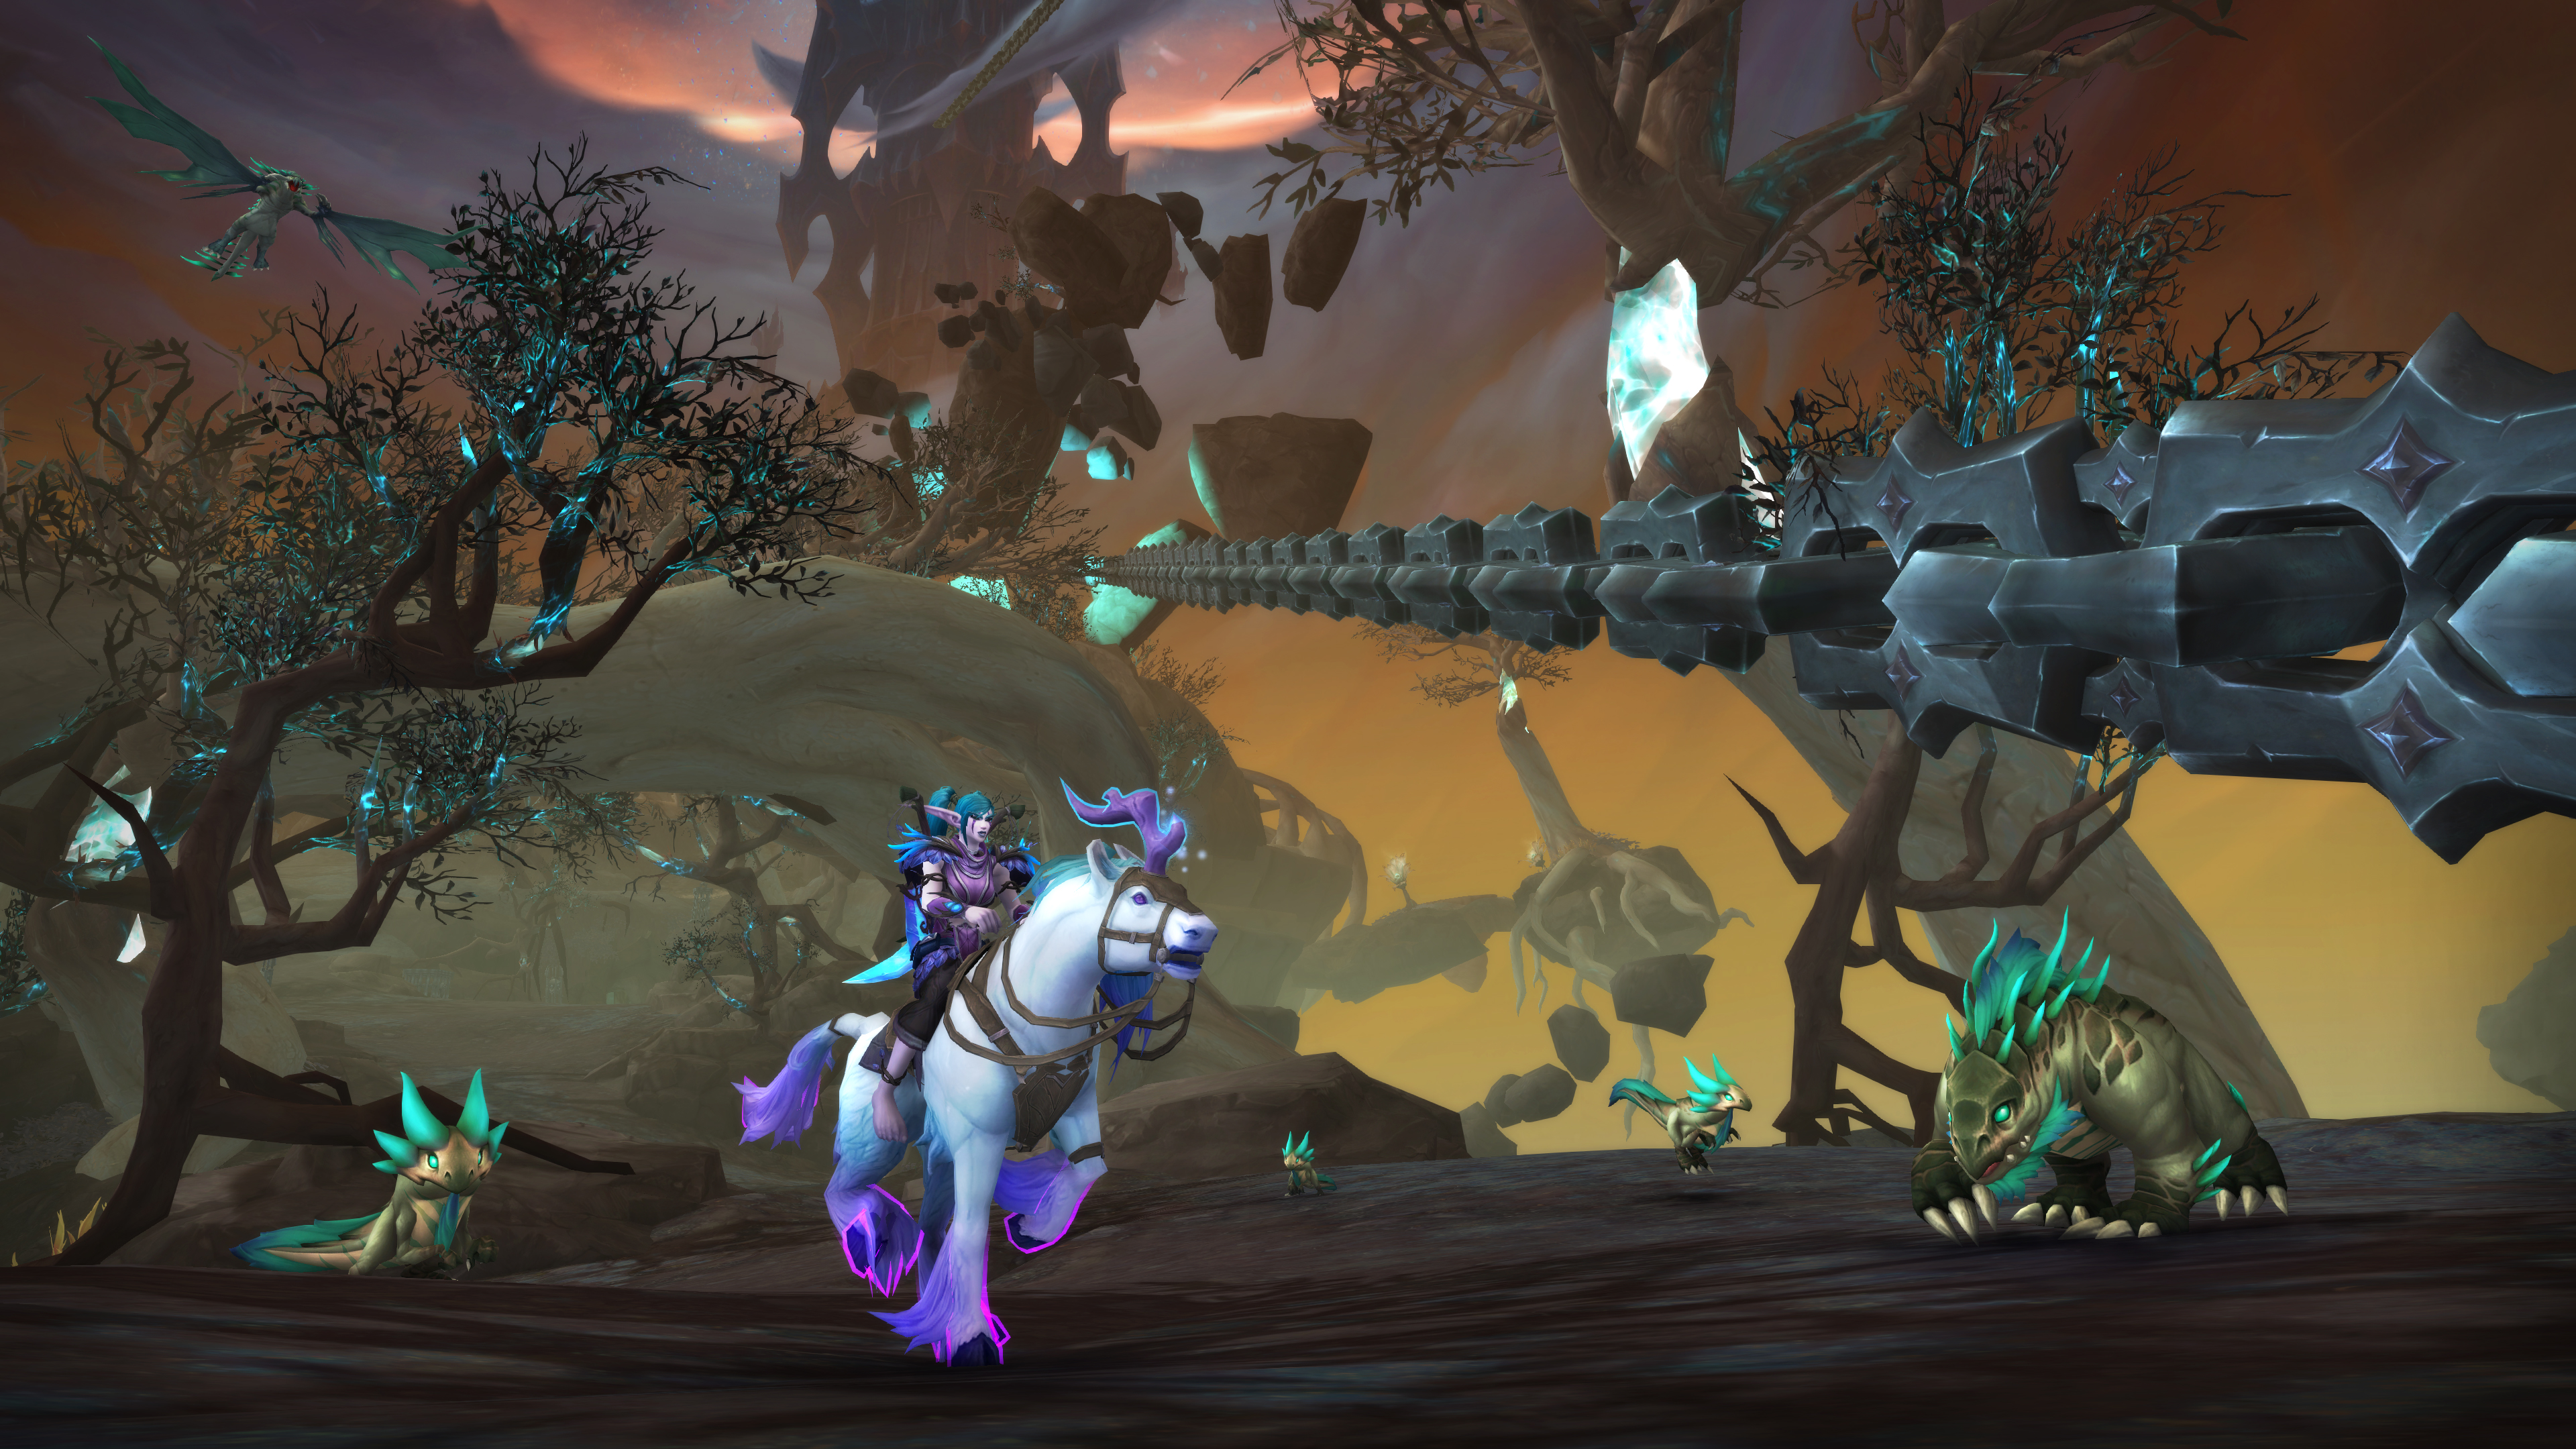 World of Warcraft: Shadowlands' next big update, Chains of Domination, revealed